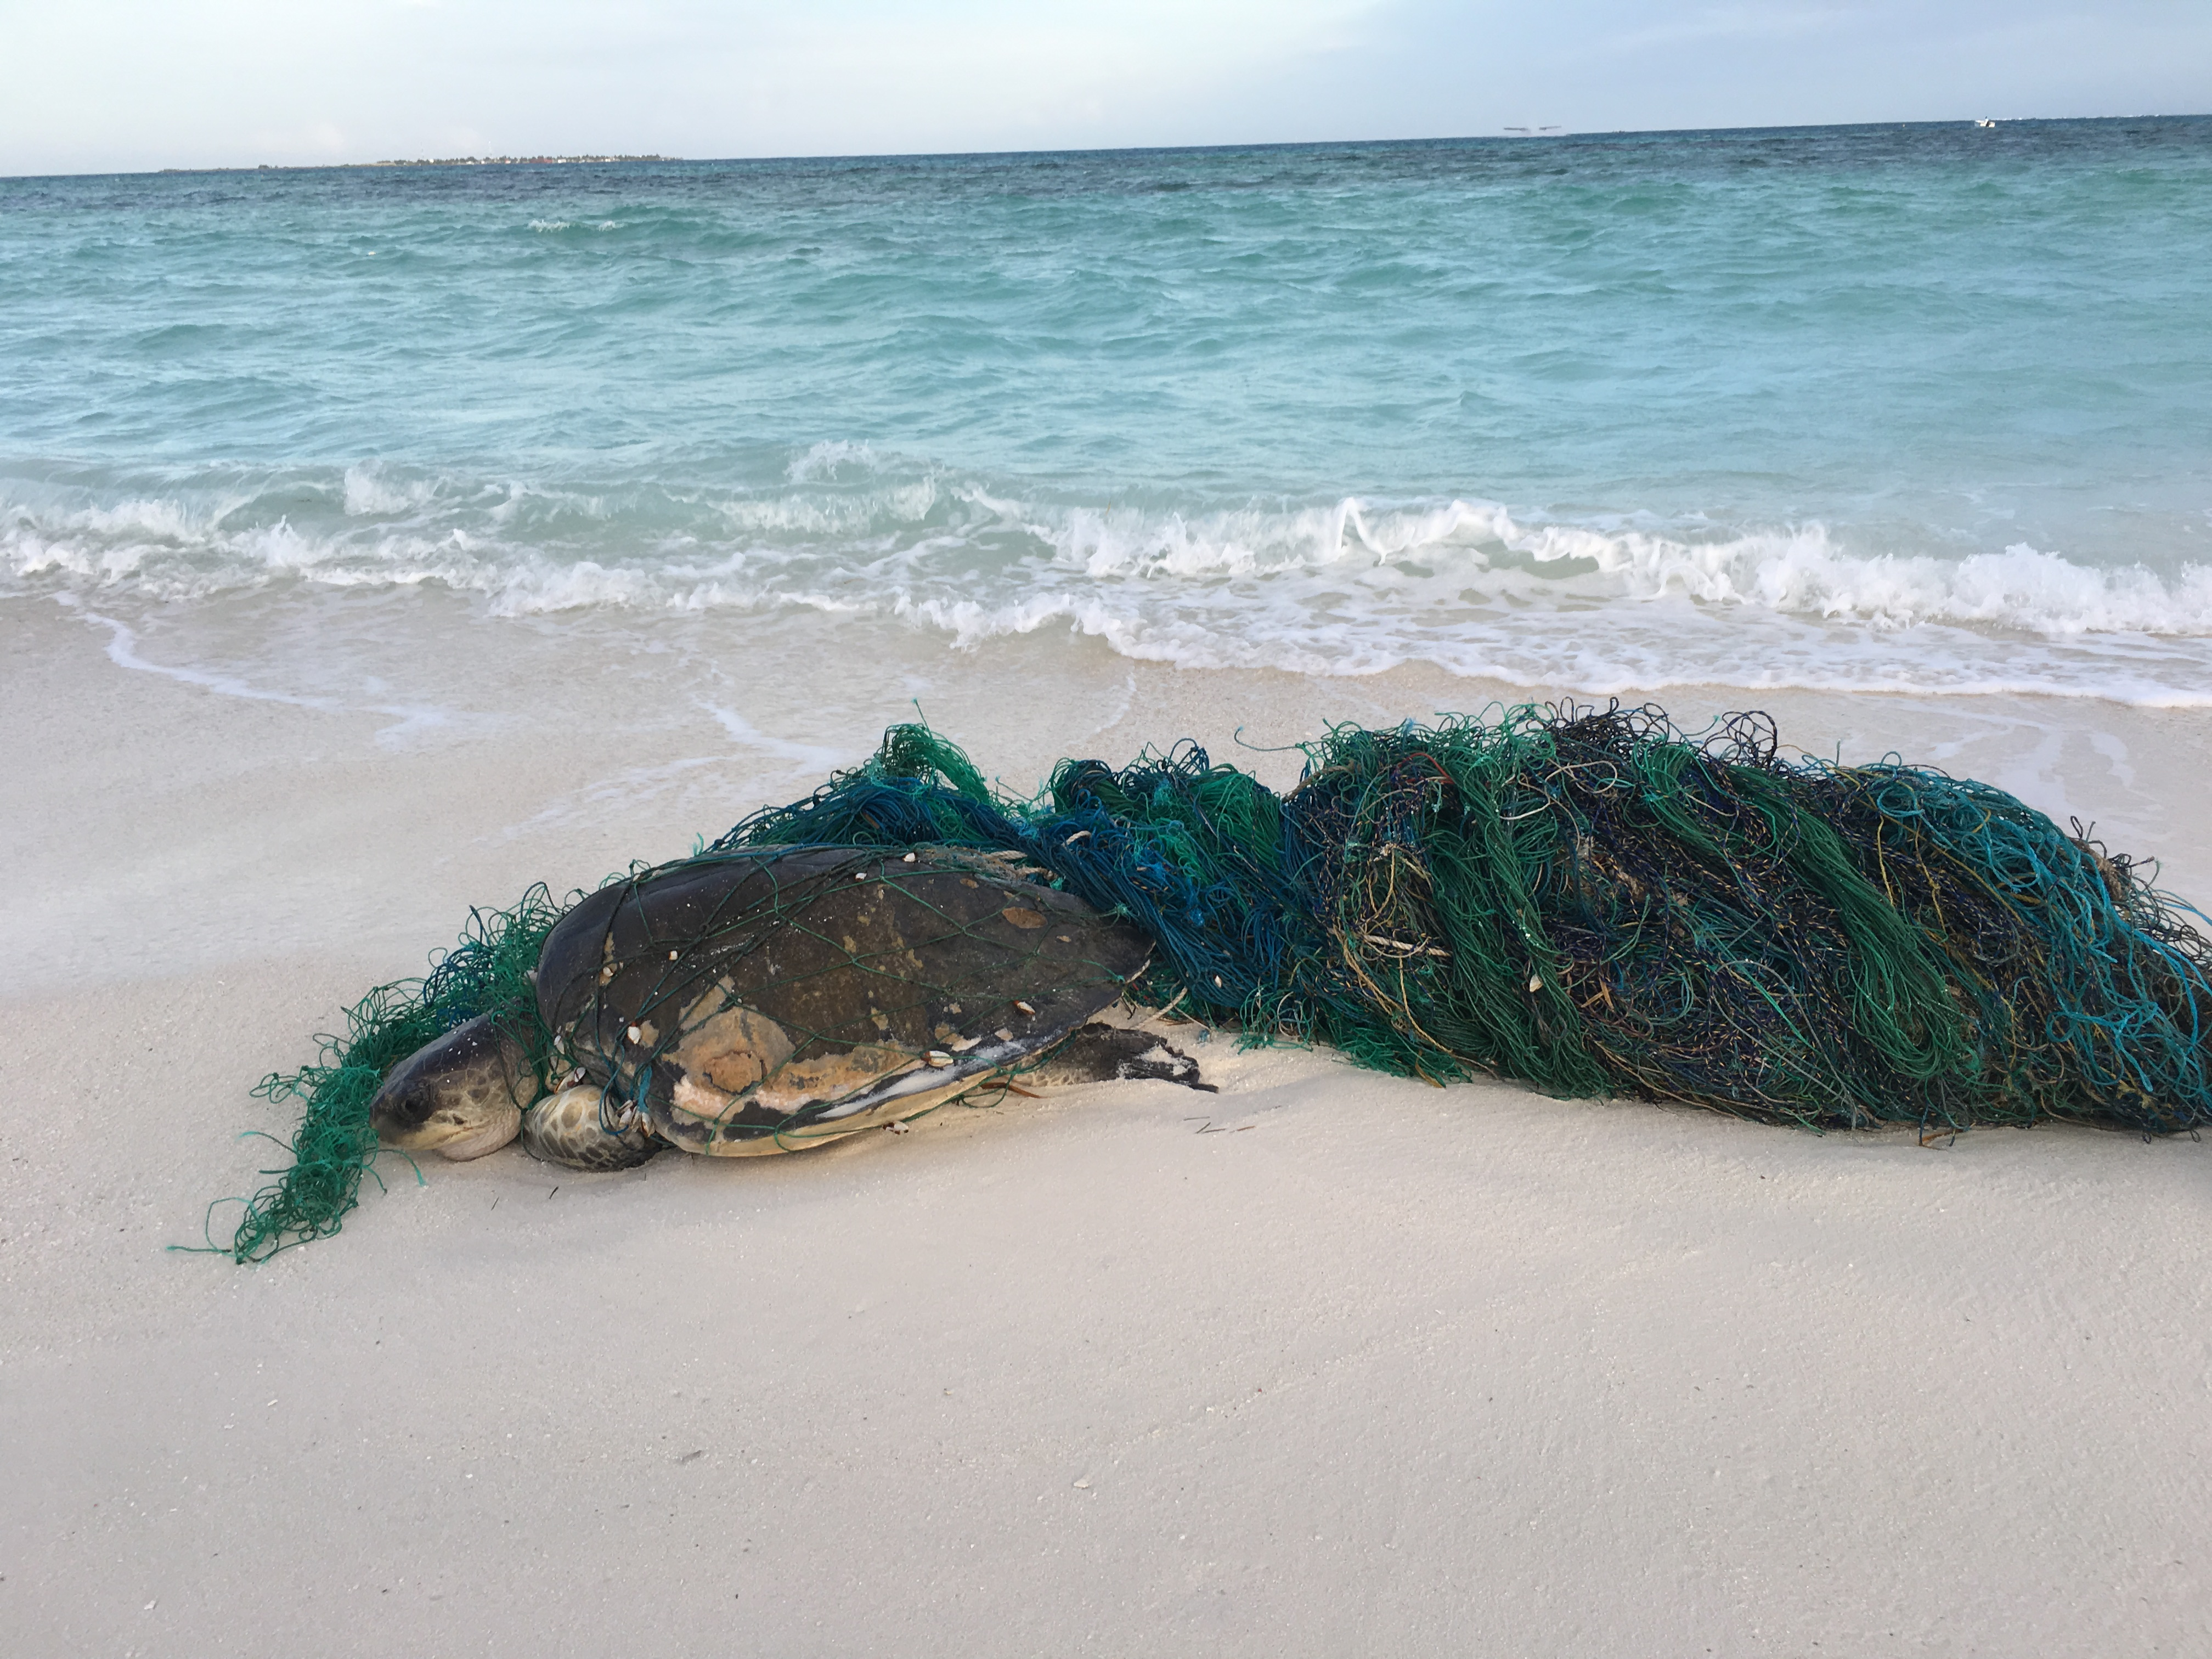 An entangled olive ridley turtle found washed ashore on Coco Palm Dhuni Kolhu 2017 (Photo credit: Claire Petros)